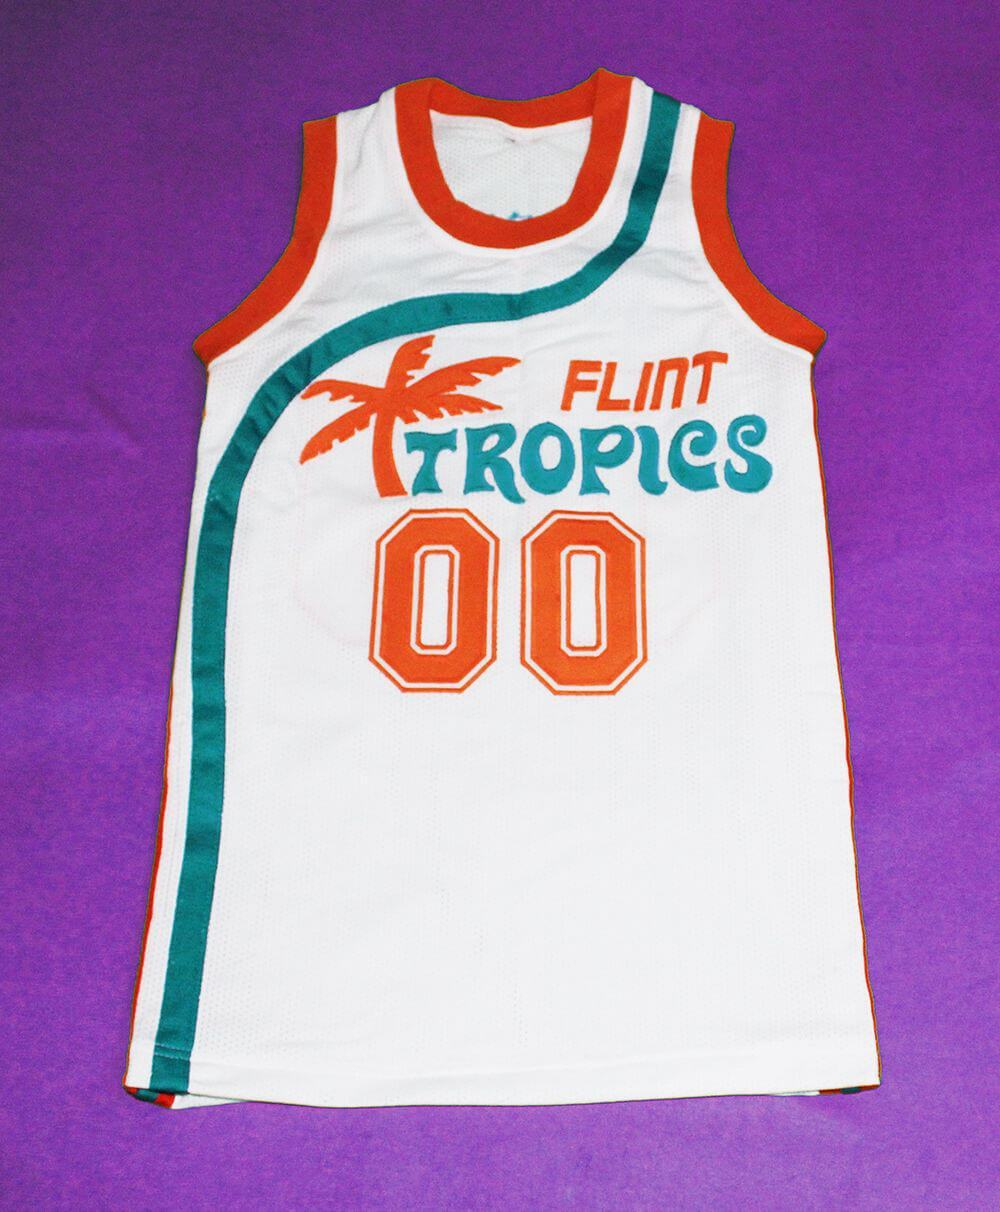 Flint Tropics 00 Scootsie Basketball Jersey Embroidery Hand Stitched